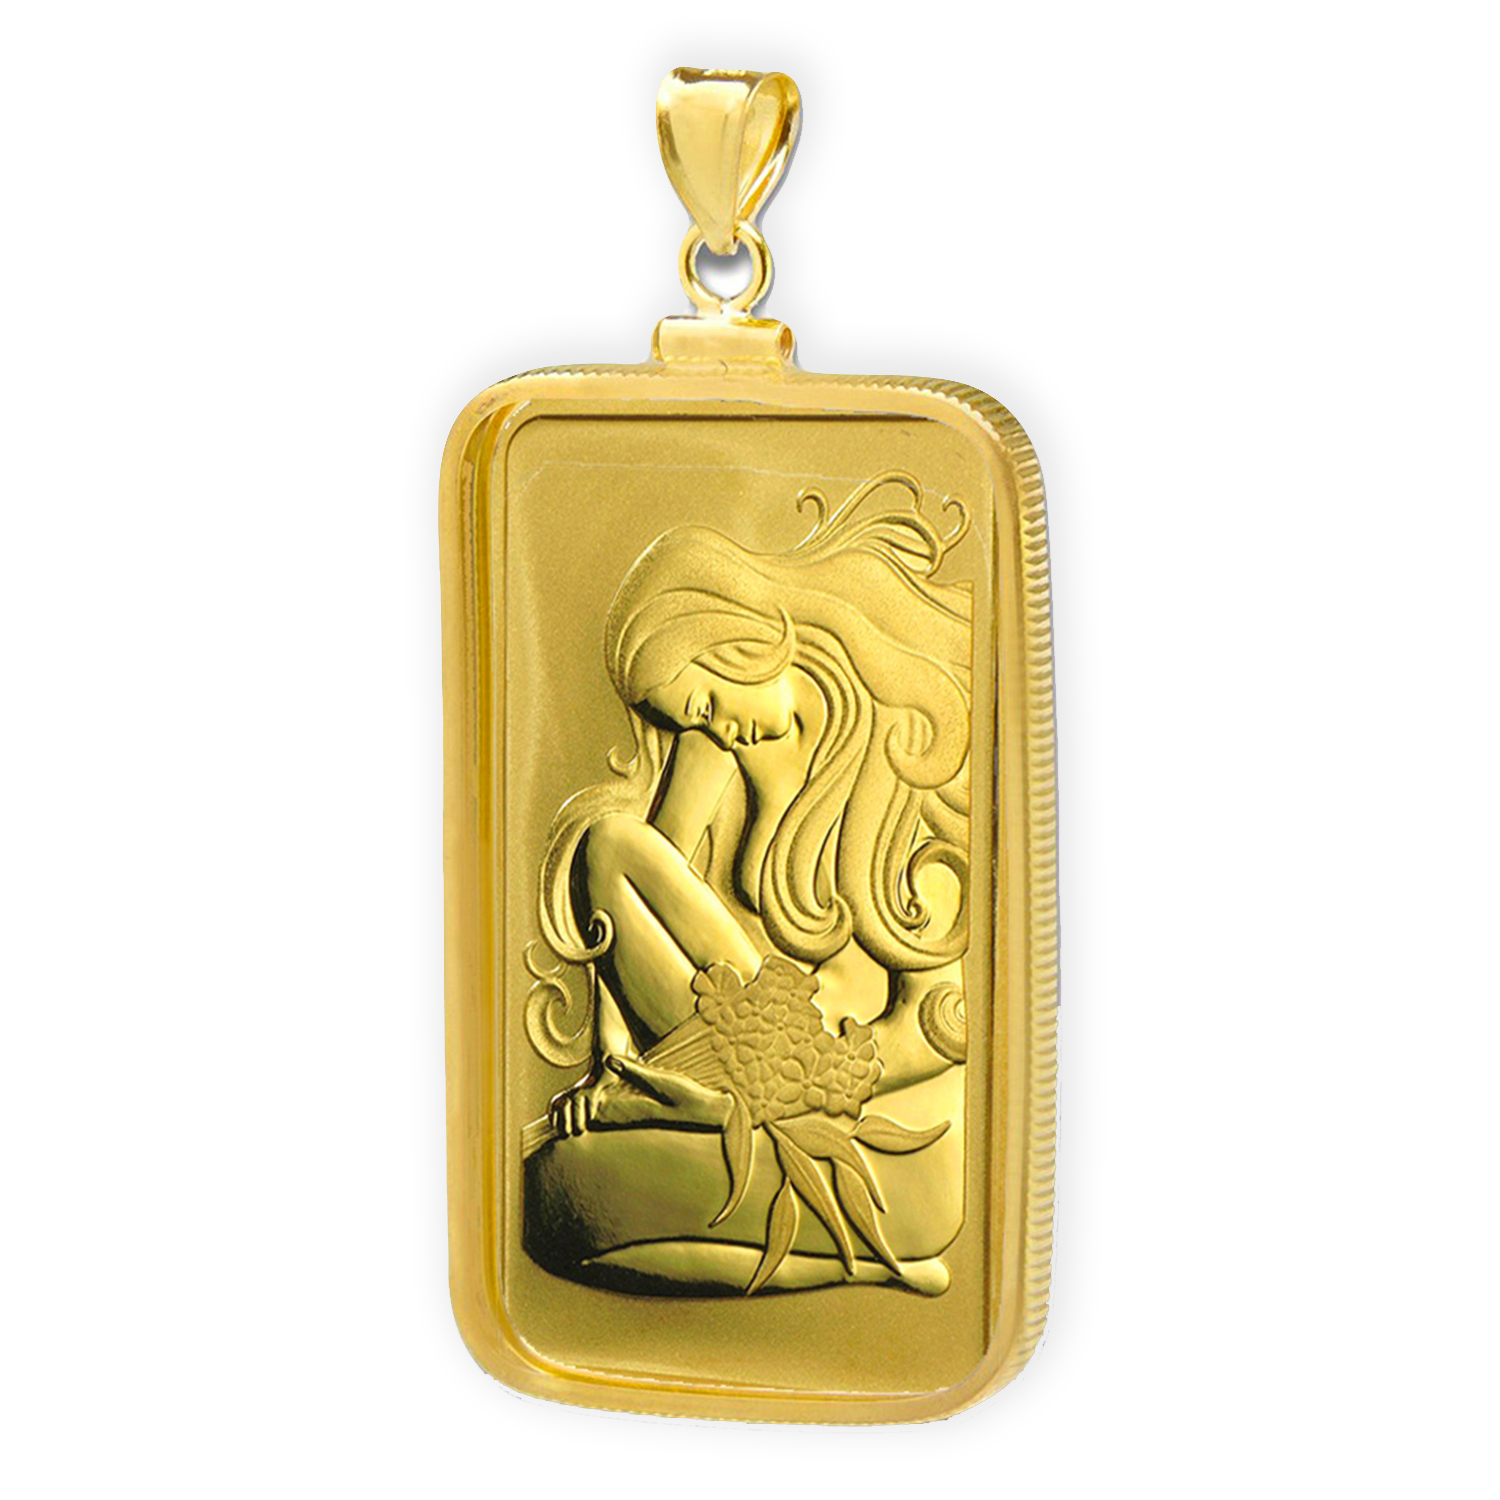 1 oz Gold Bar - Perth Mint Oriana Bar Pendant